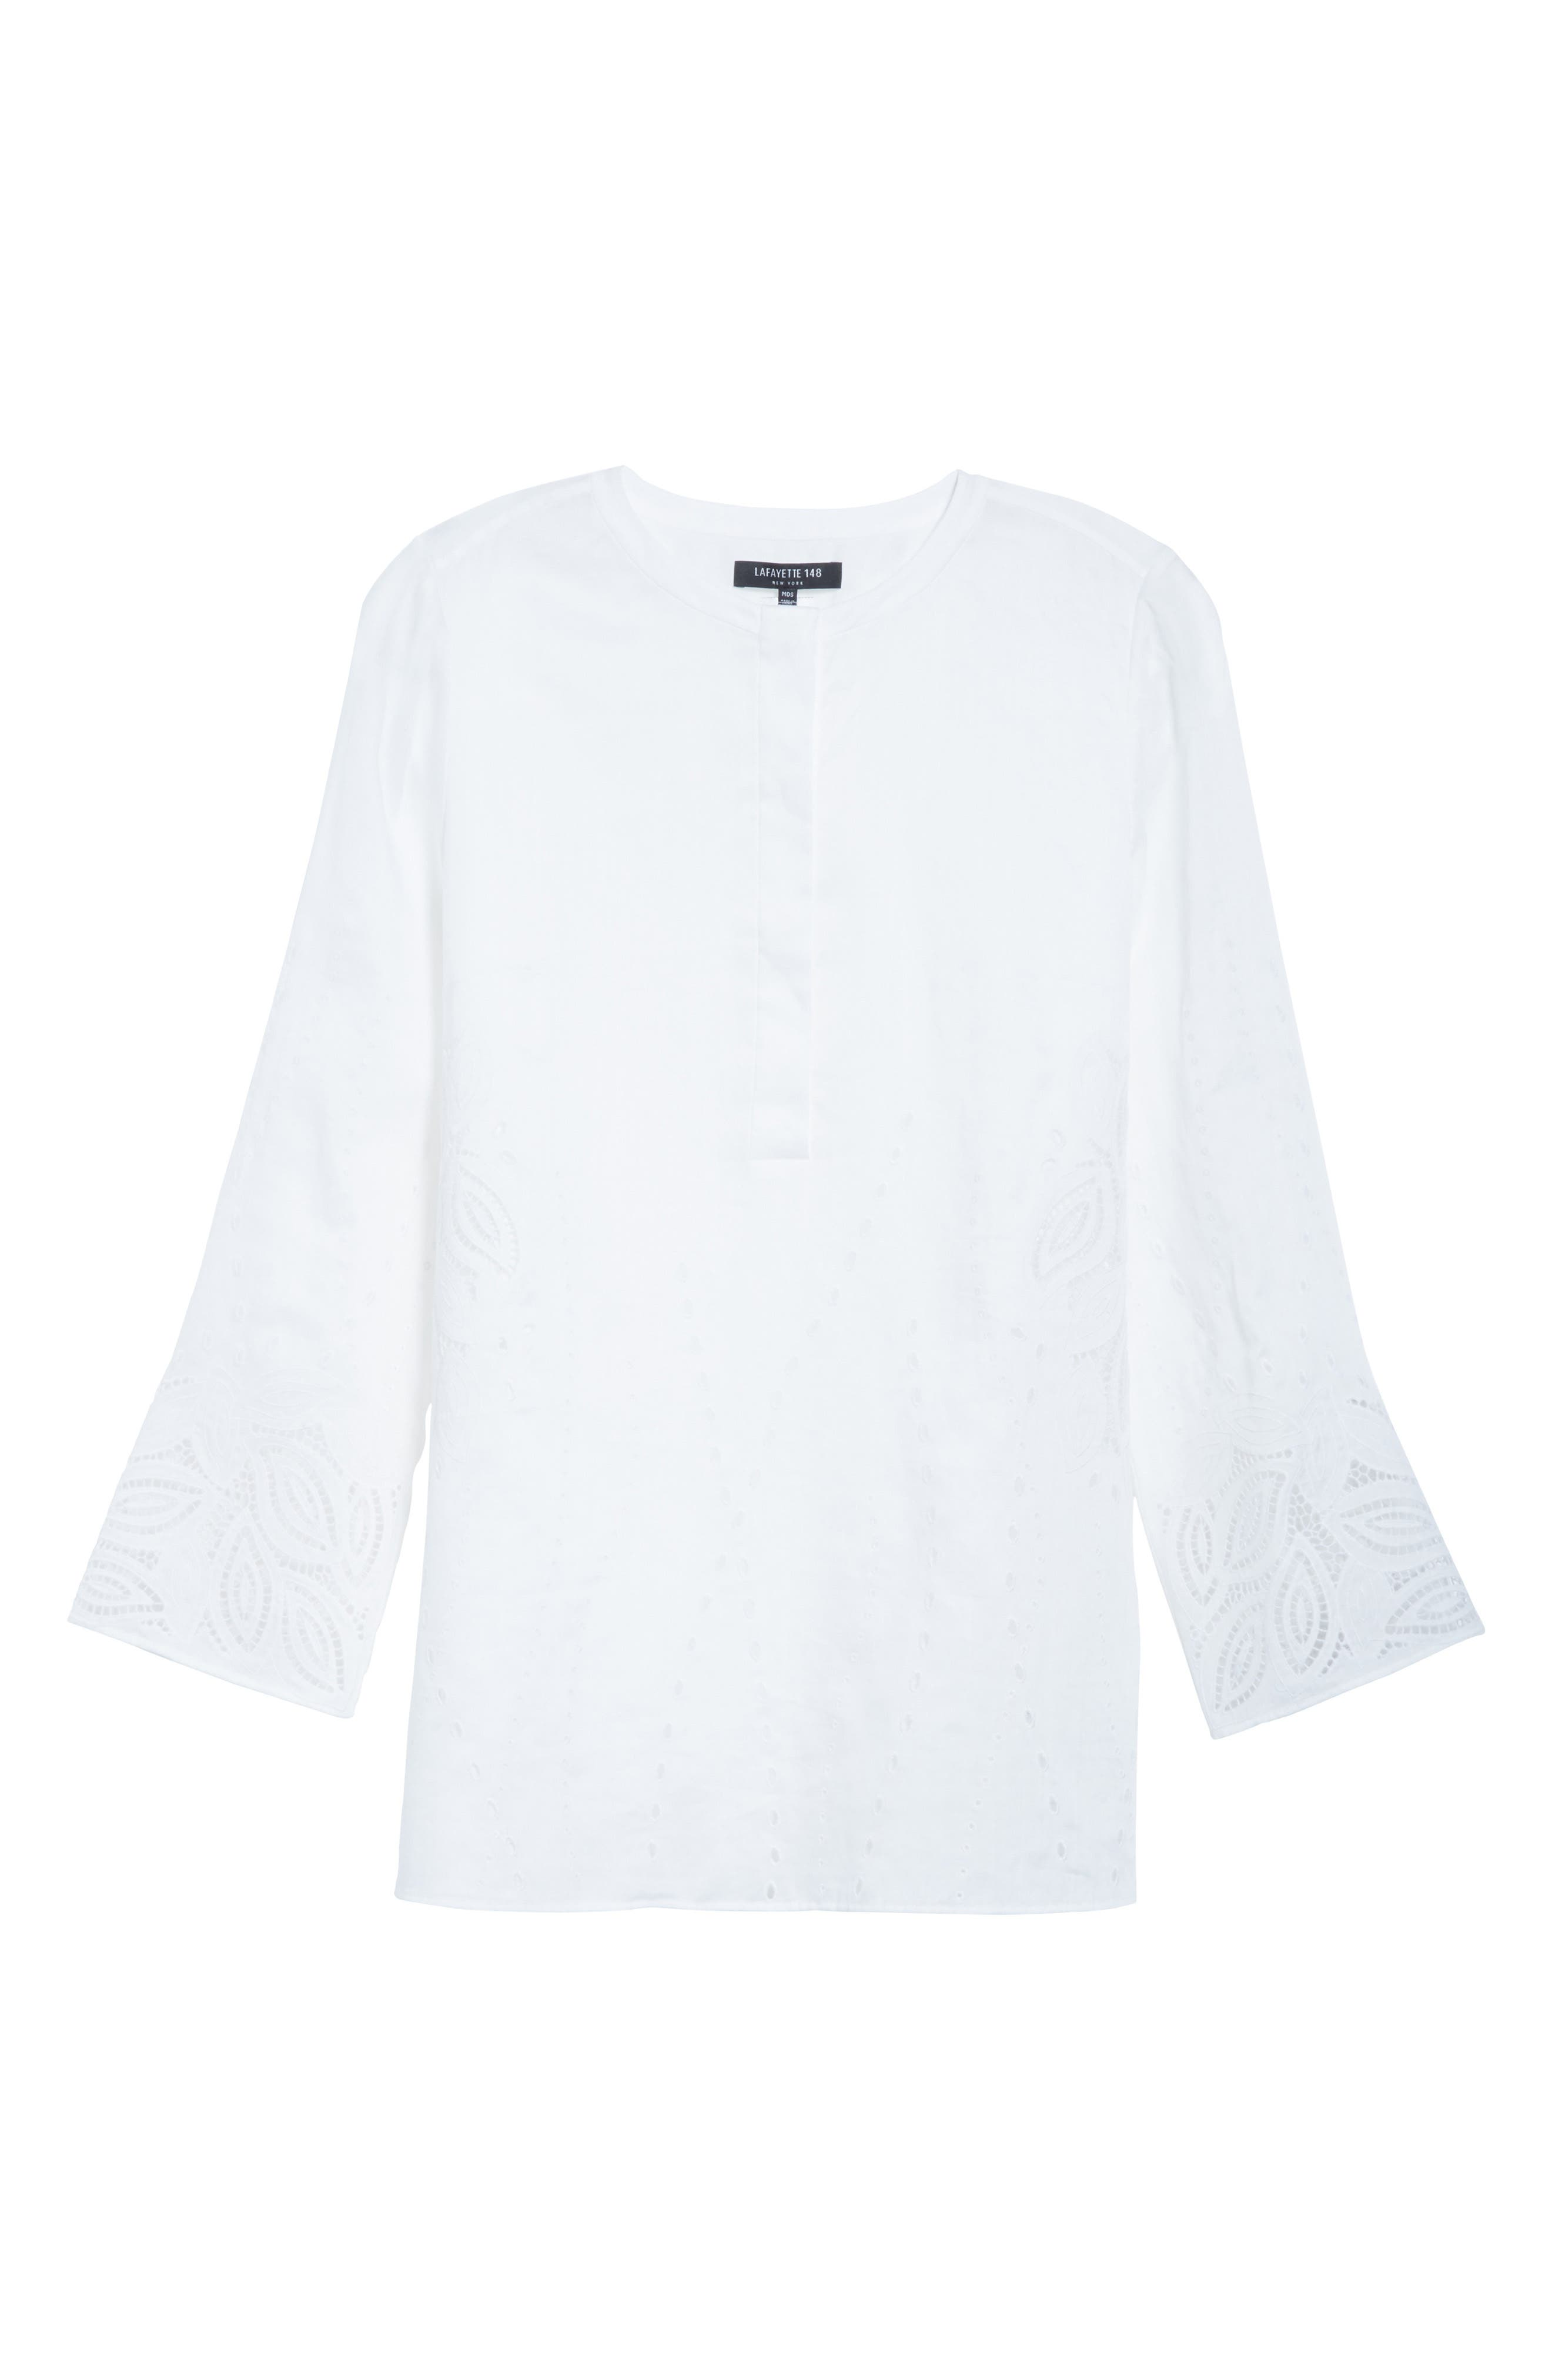 Haisley Embroidered Gemma Cloth Blouse,                             Alternate thumbnail 6, color,                             100